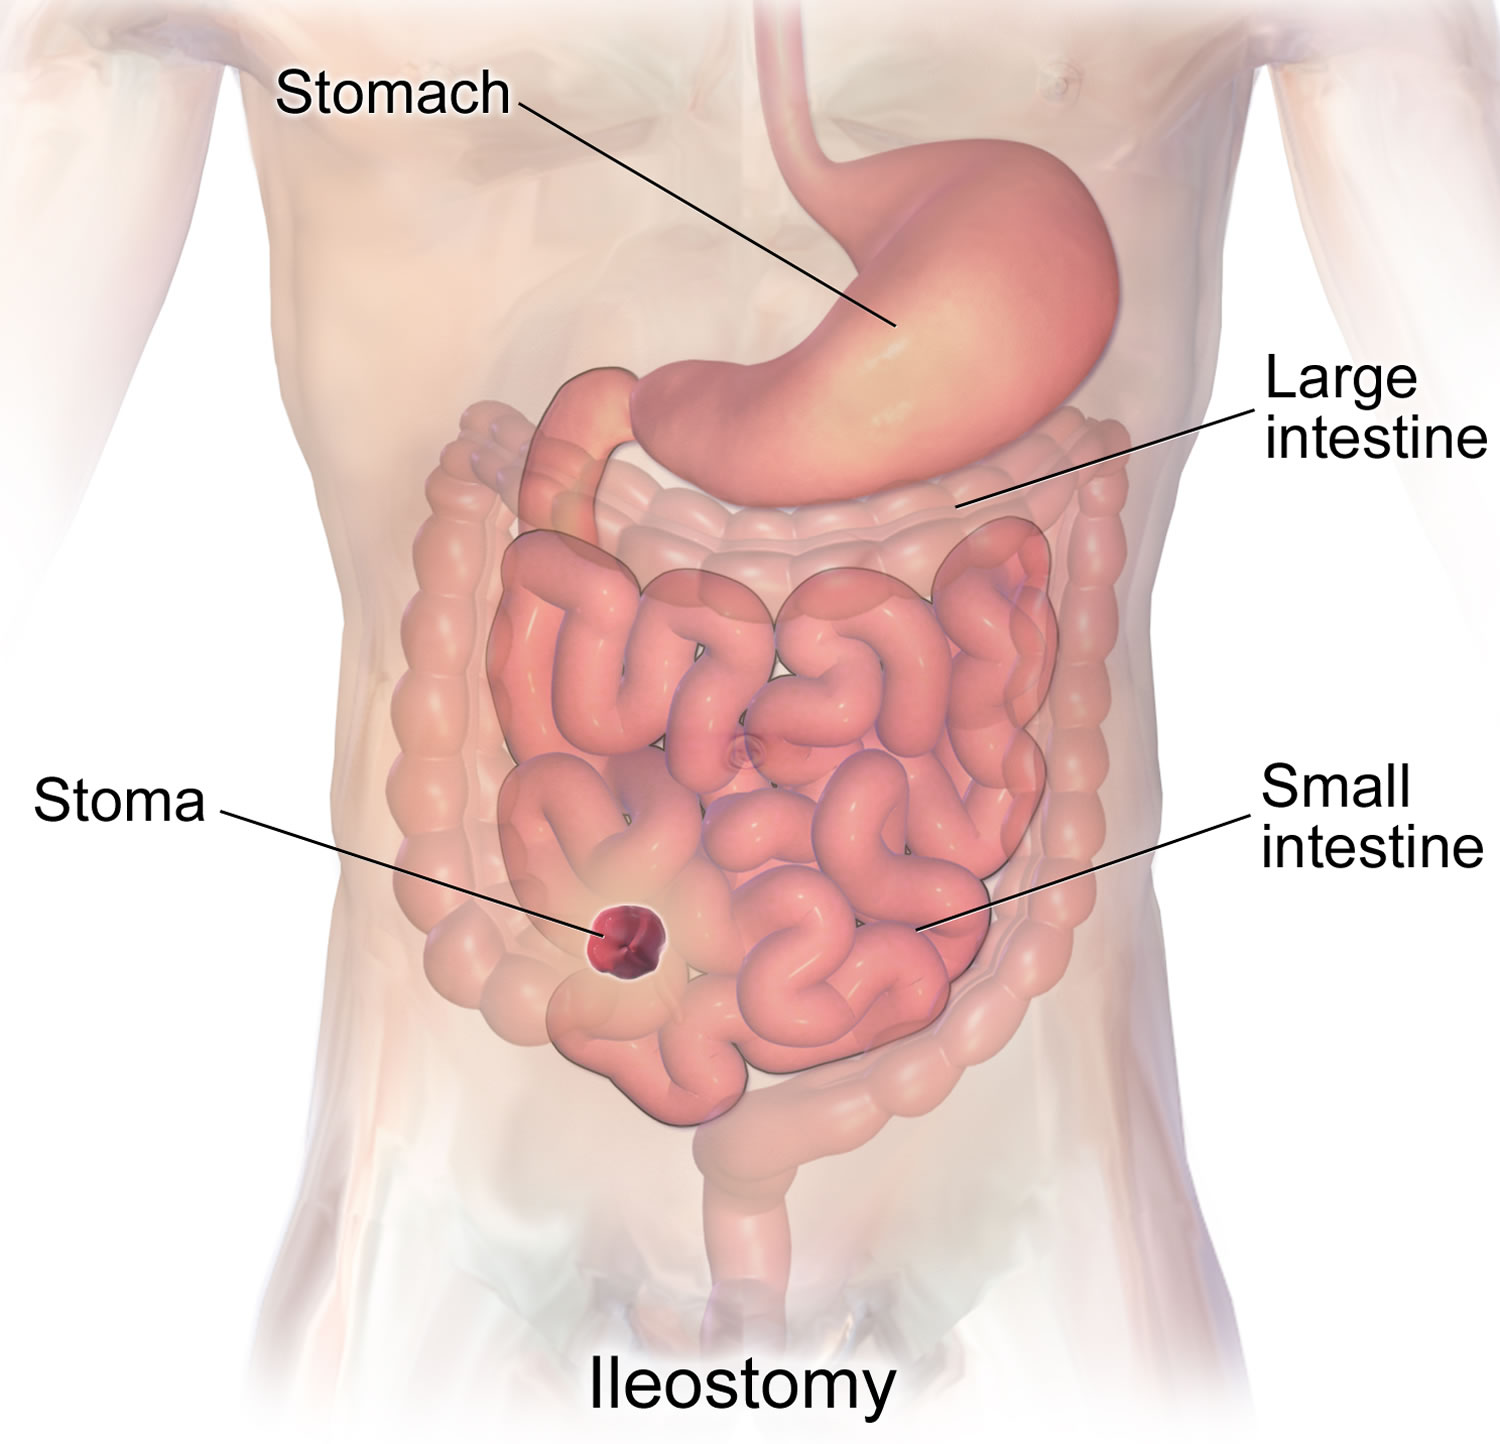 ileostomy